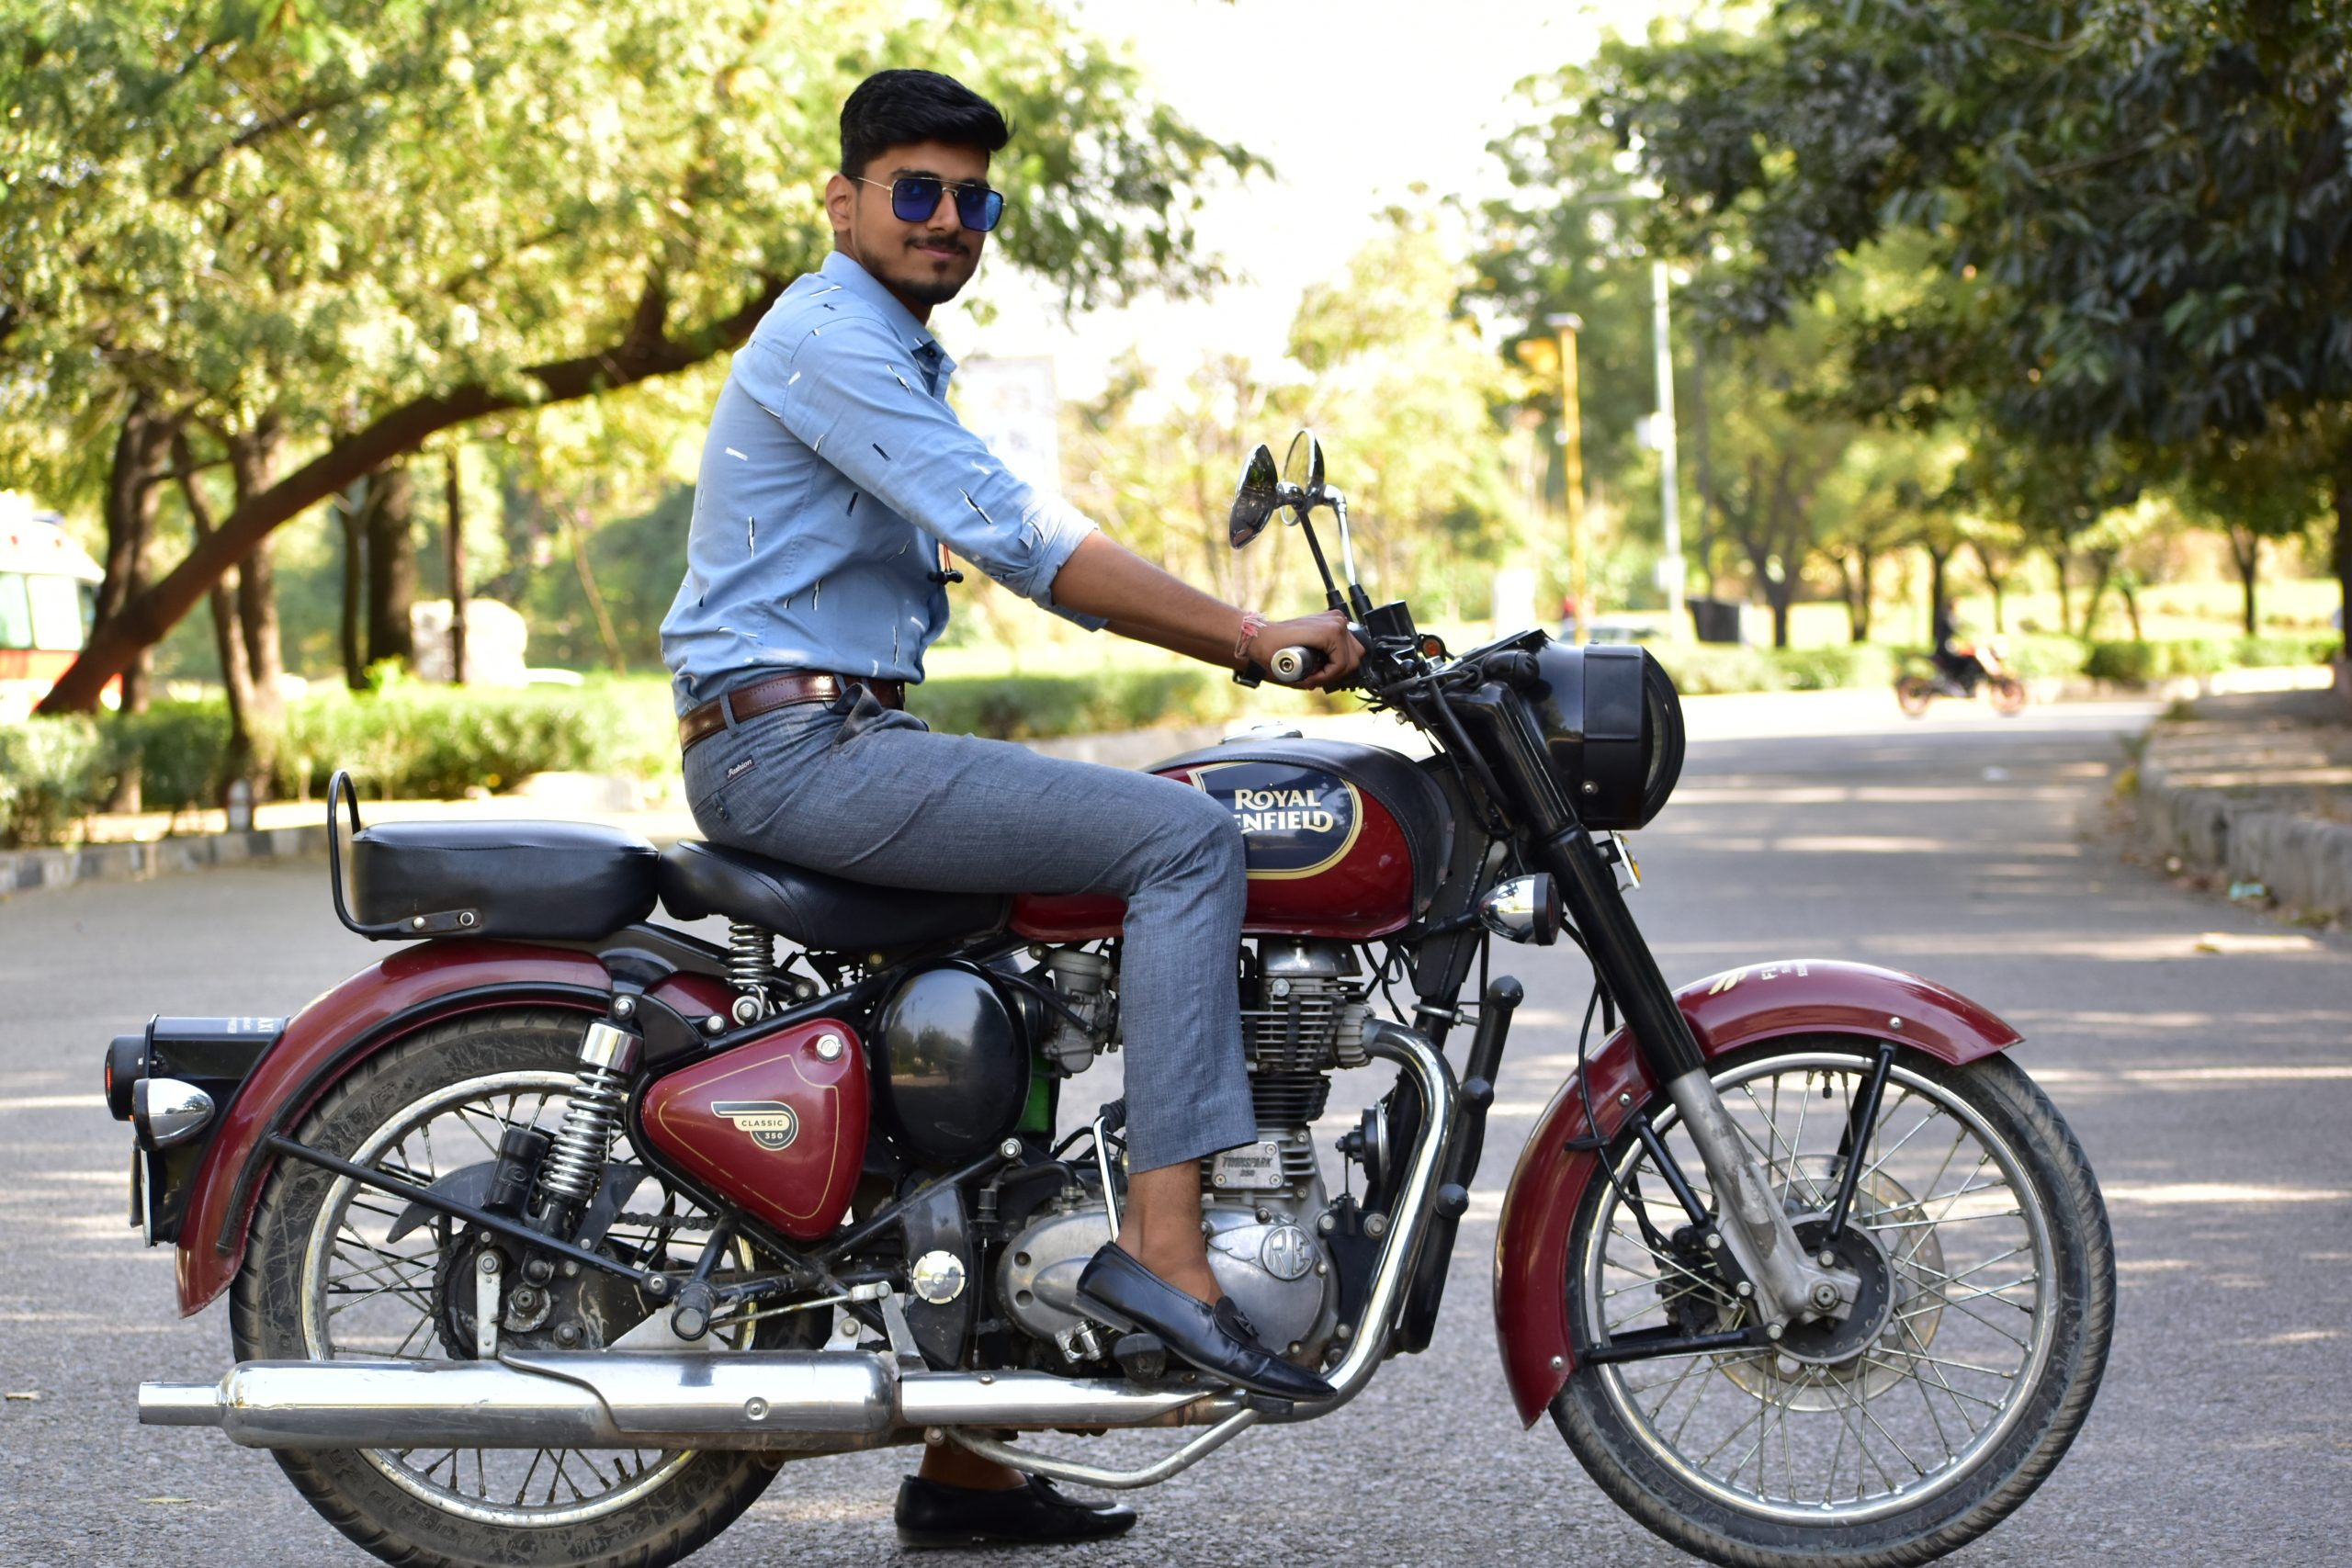 A man on a Royal Enfield bike